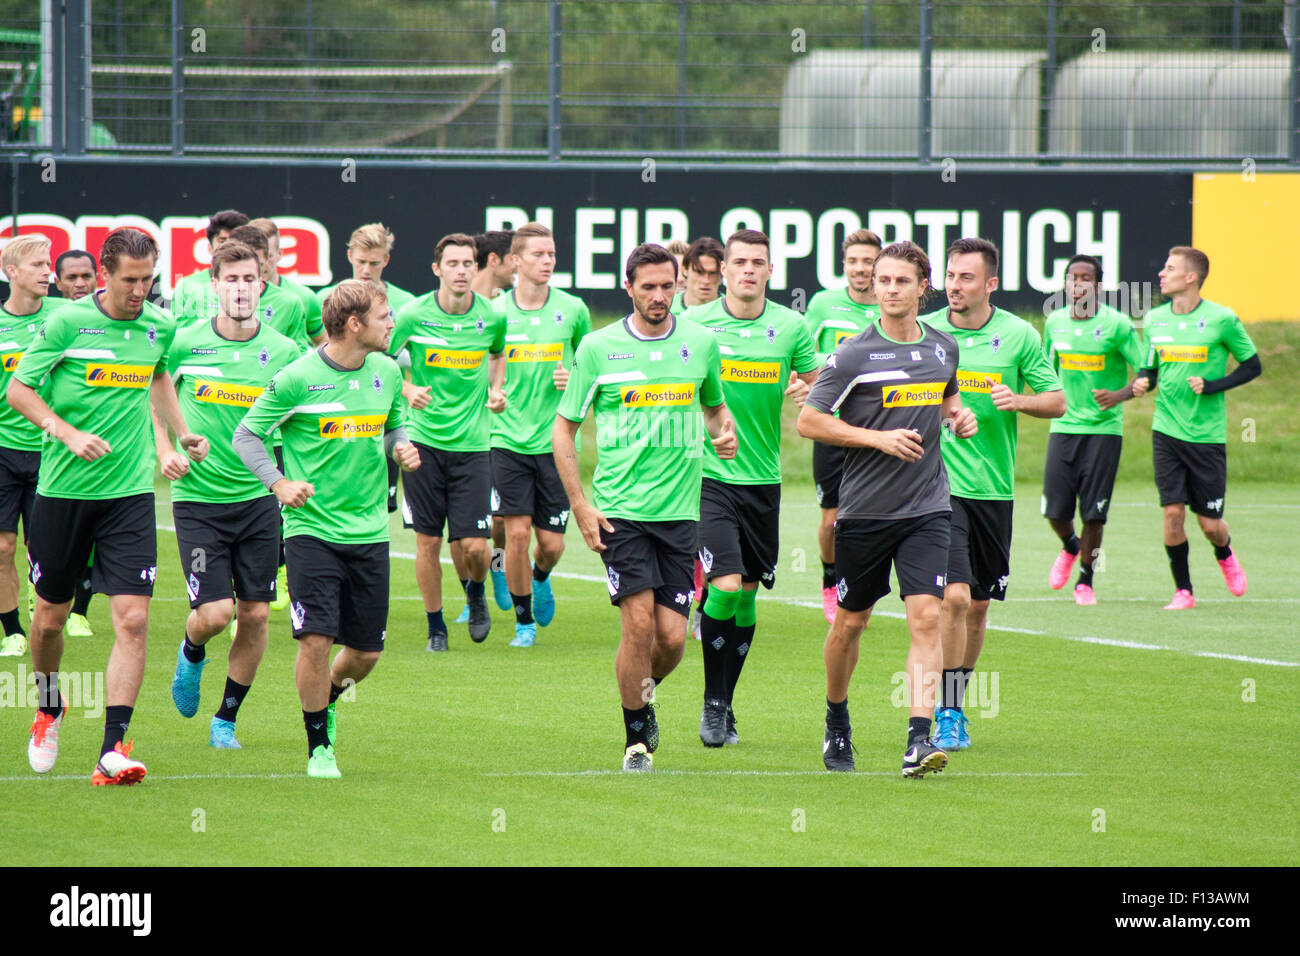 Mönchengladbach, Germany. 26th August, 2015. Professional football players during training session of german - Stock Image